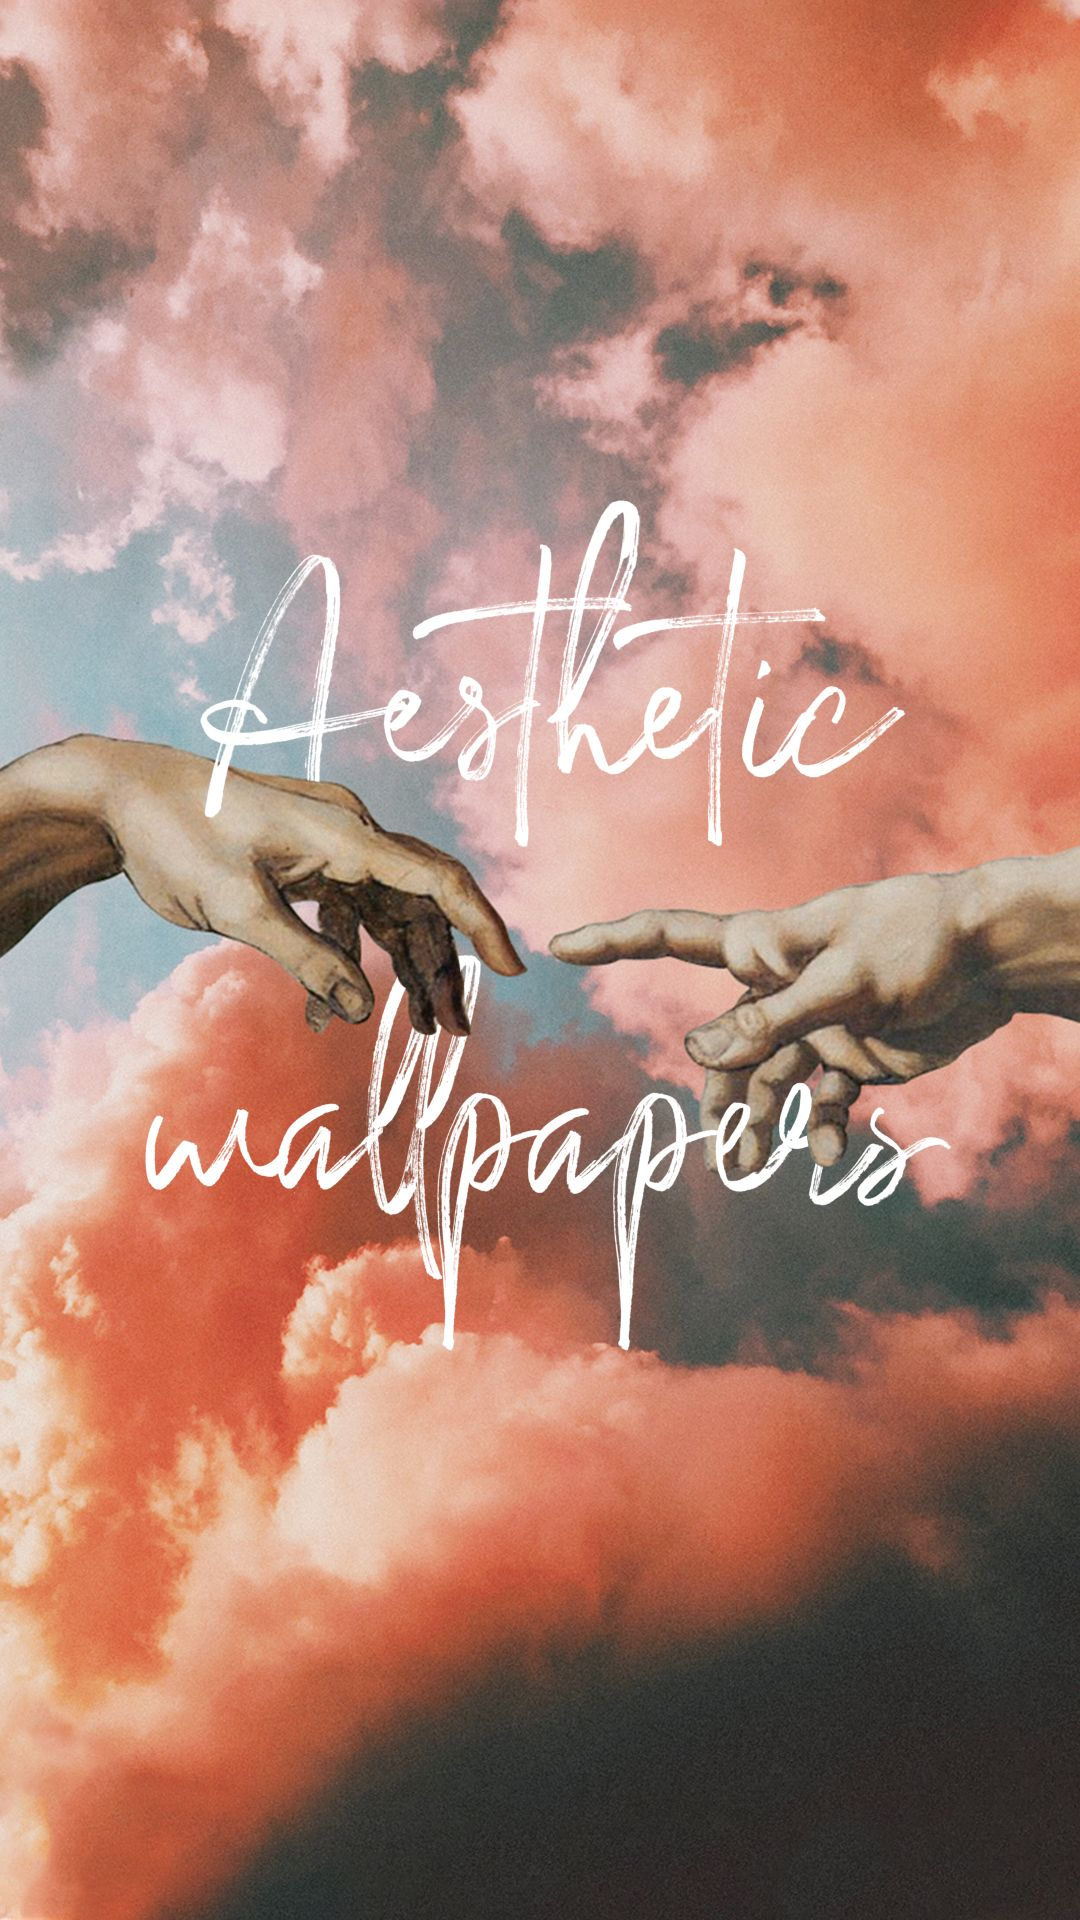 Create your own aesthetic wallpaper with PicsArt tools